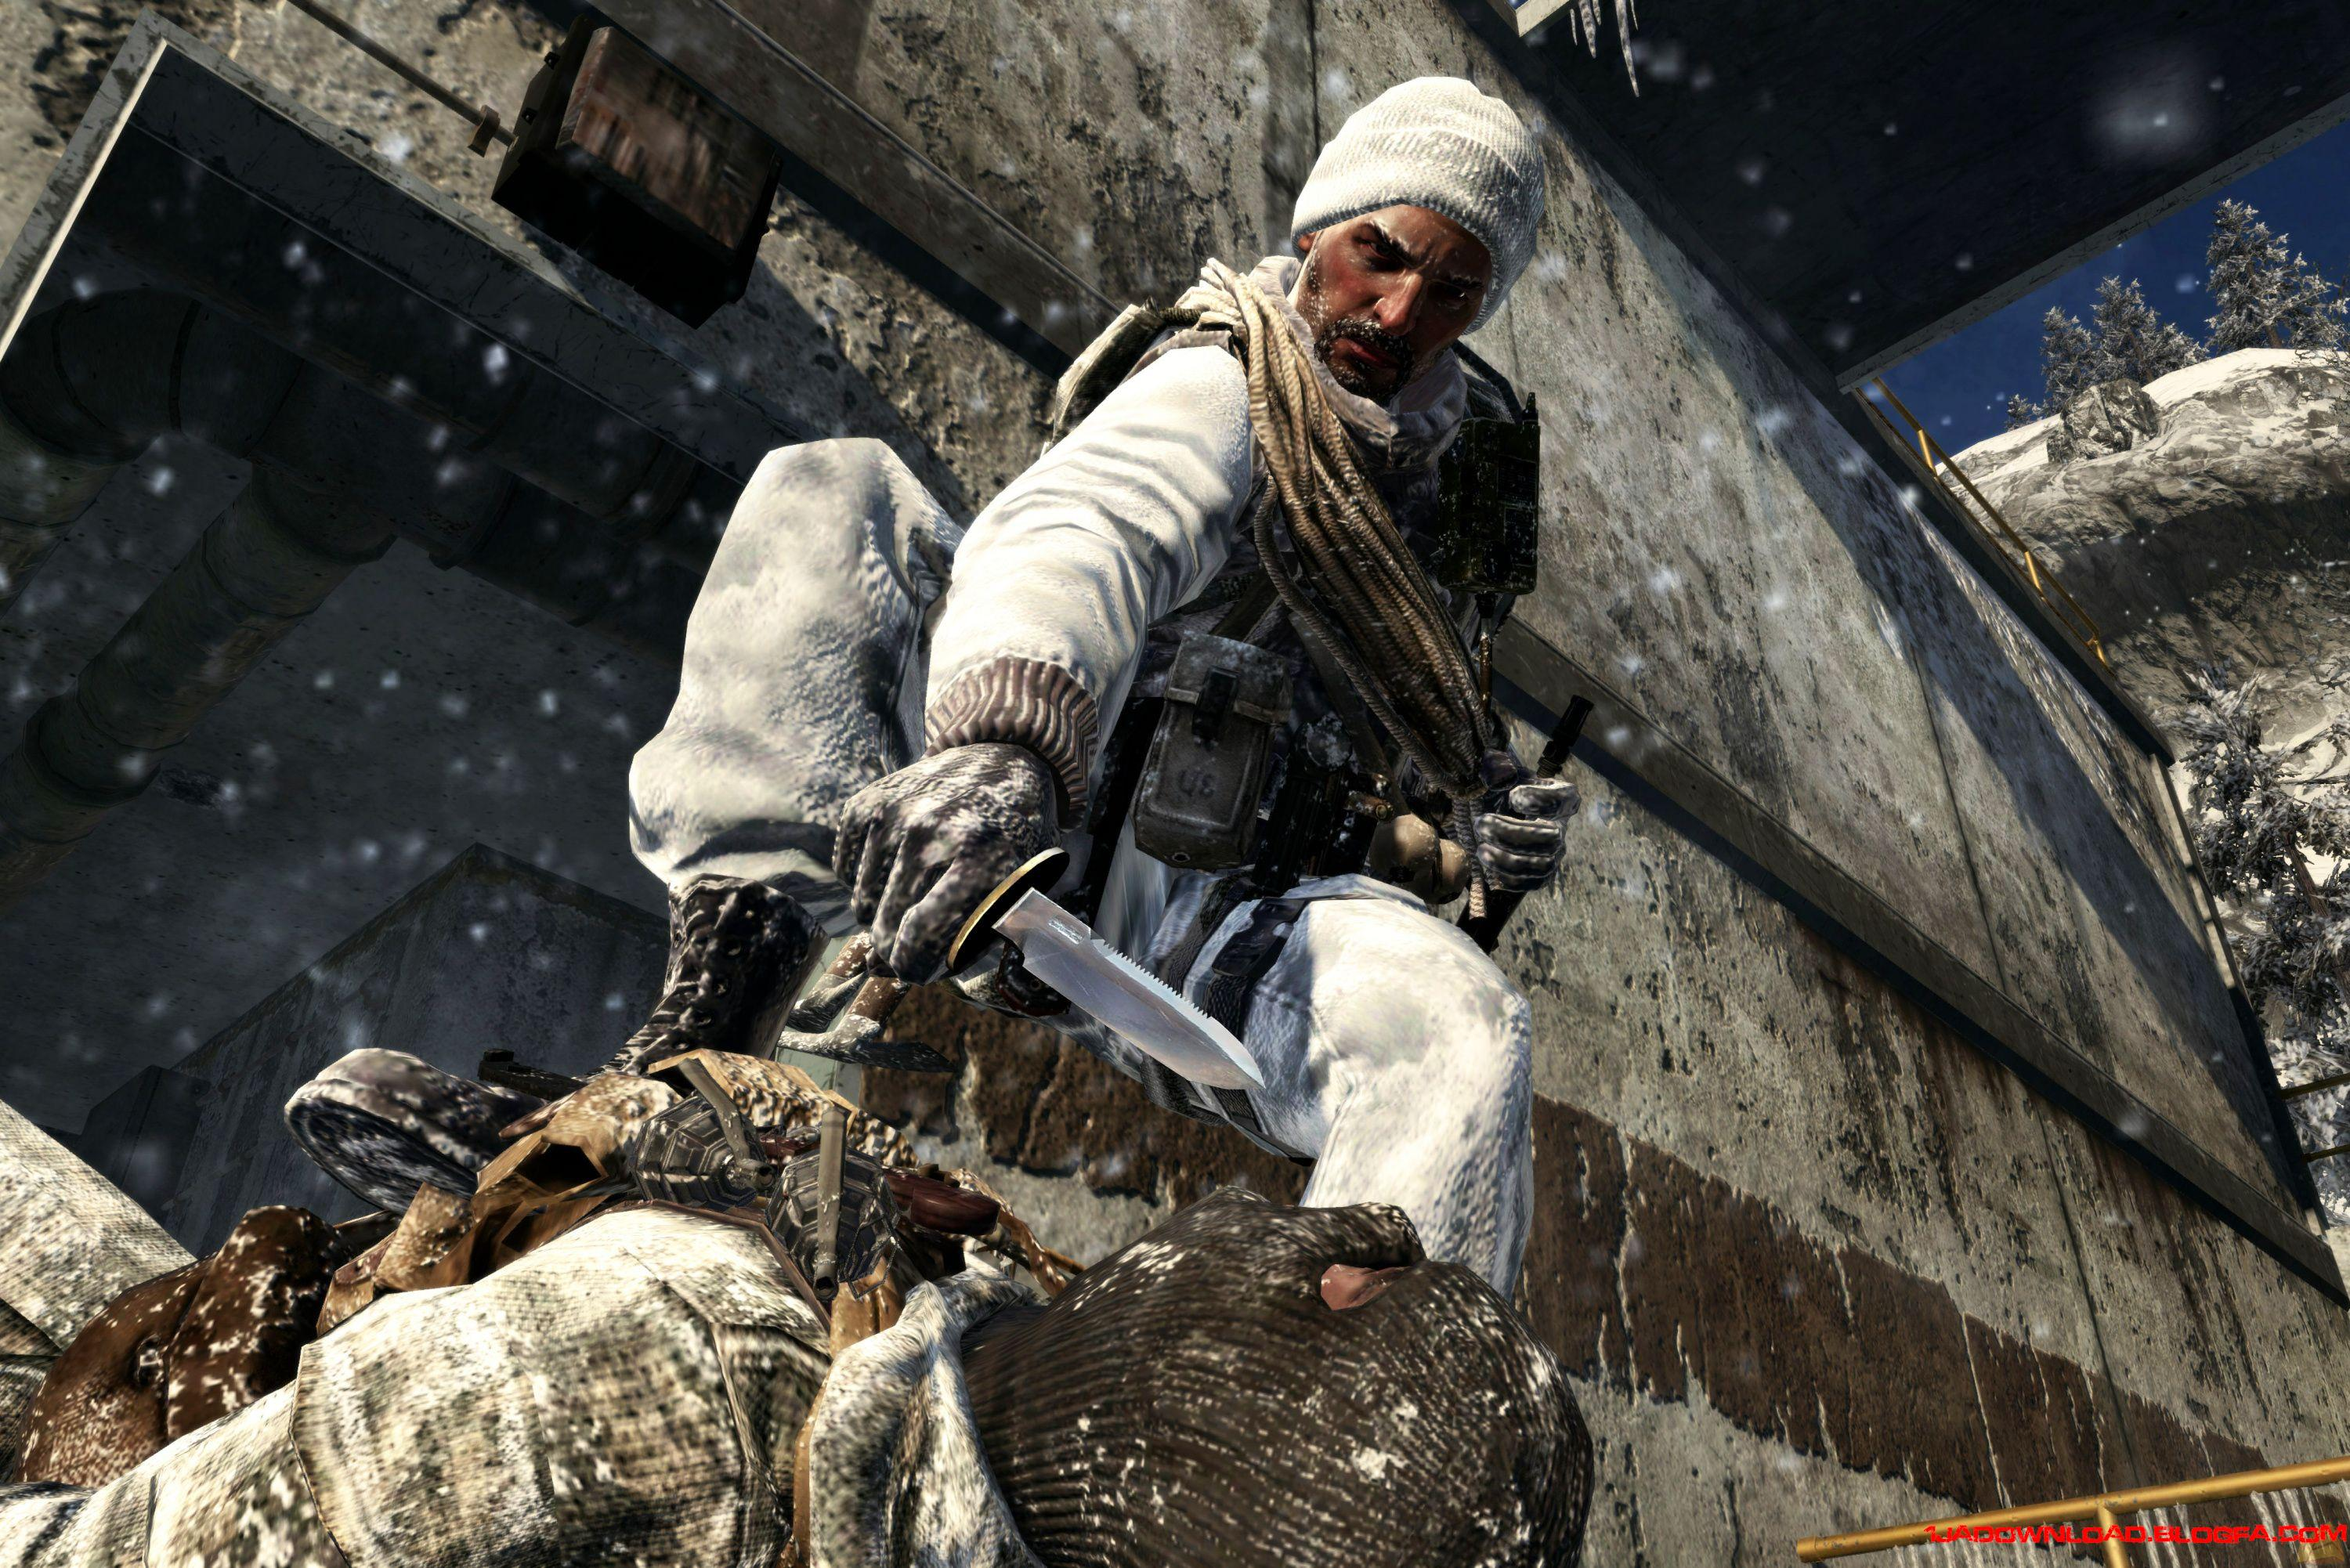 http://yekjadownload.persiangig.com/image/call-of-duty-black-ops-screenshot-snow-attack-knife-cut.jpg